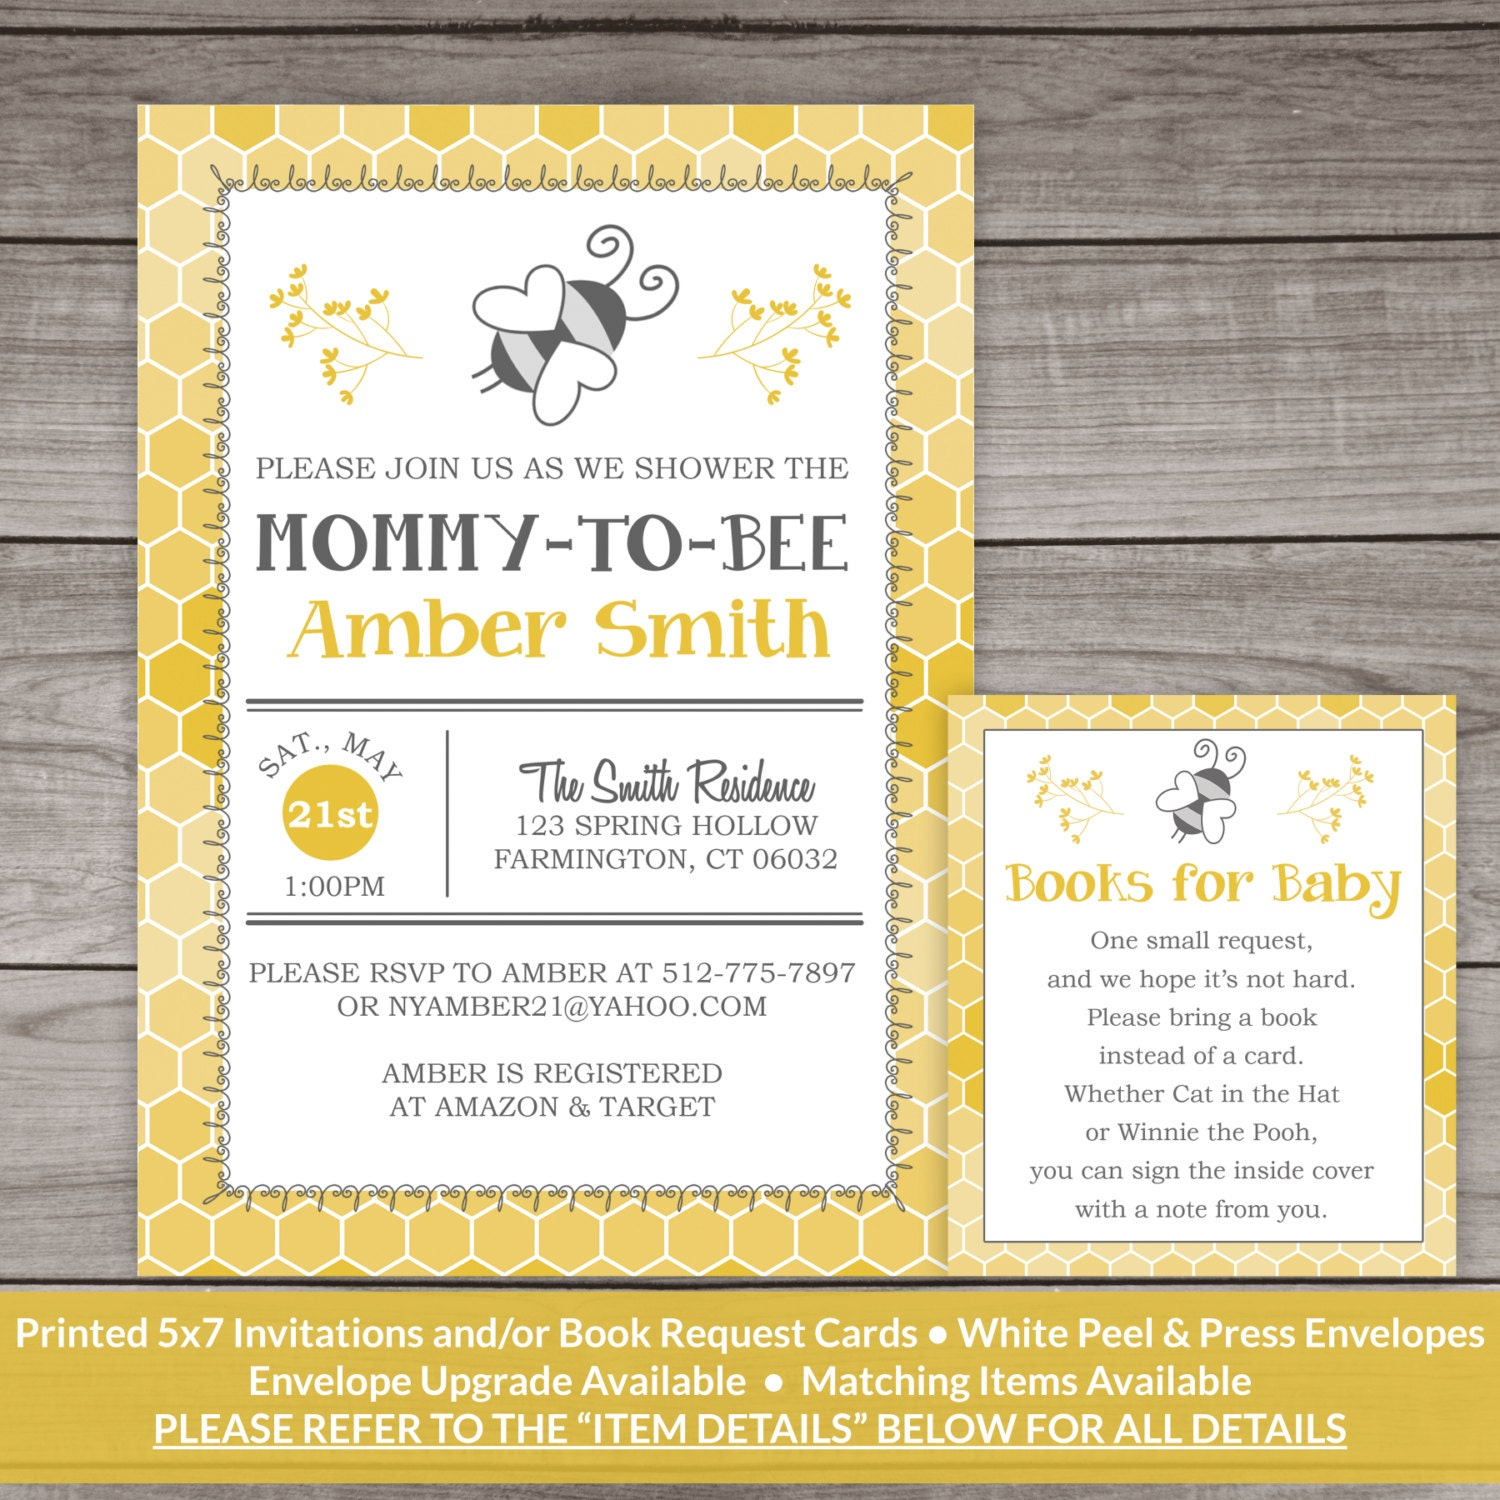 Snap bee baby shower invitation bee and honey comb typography photos ...